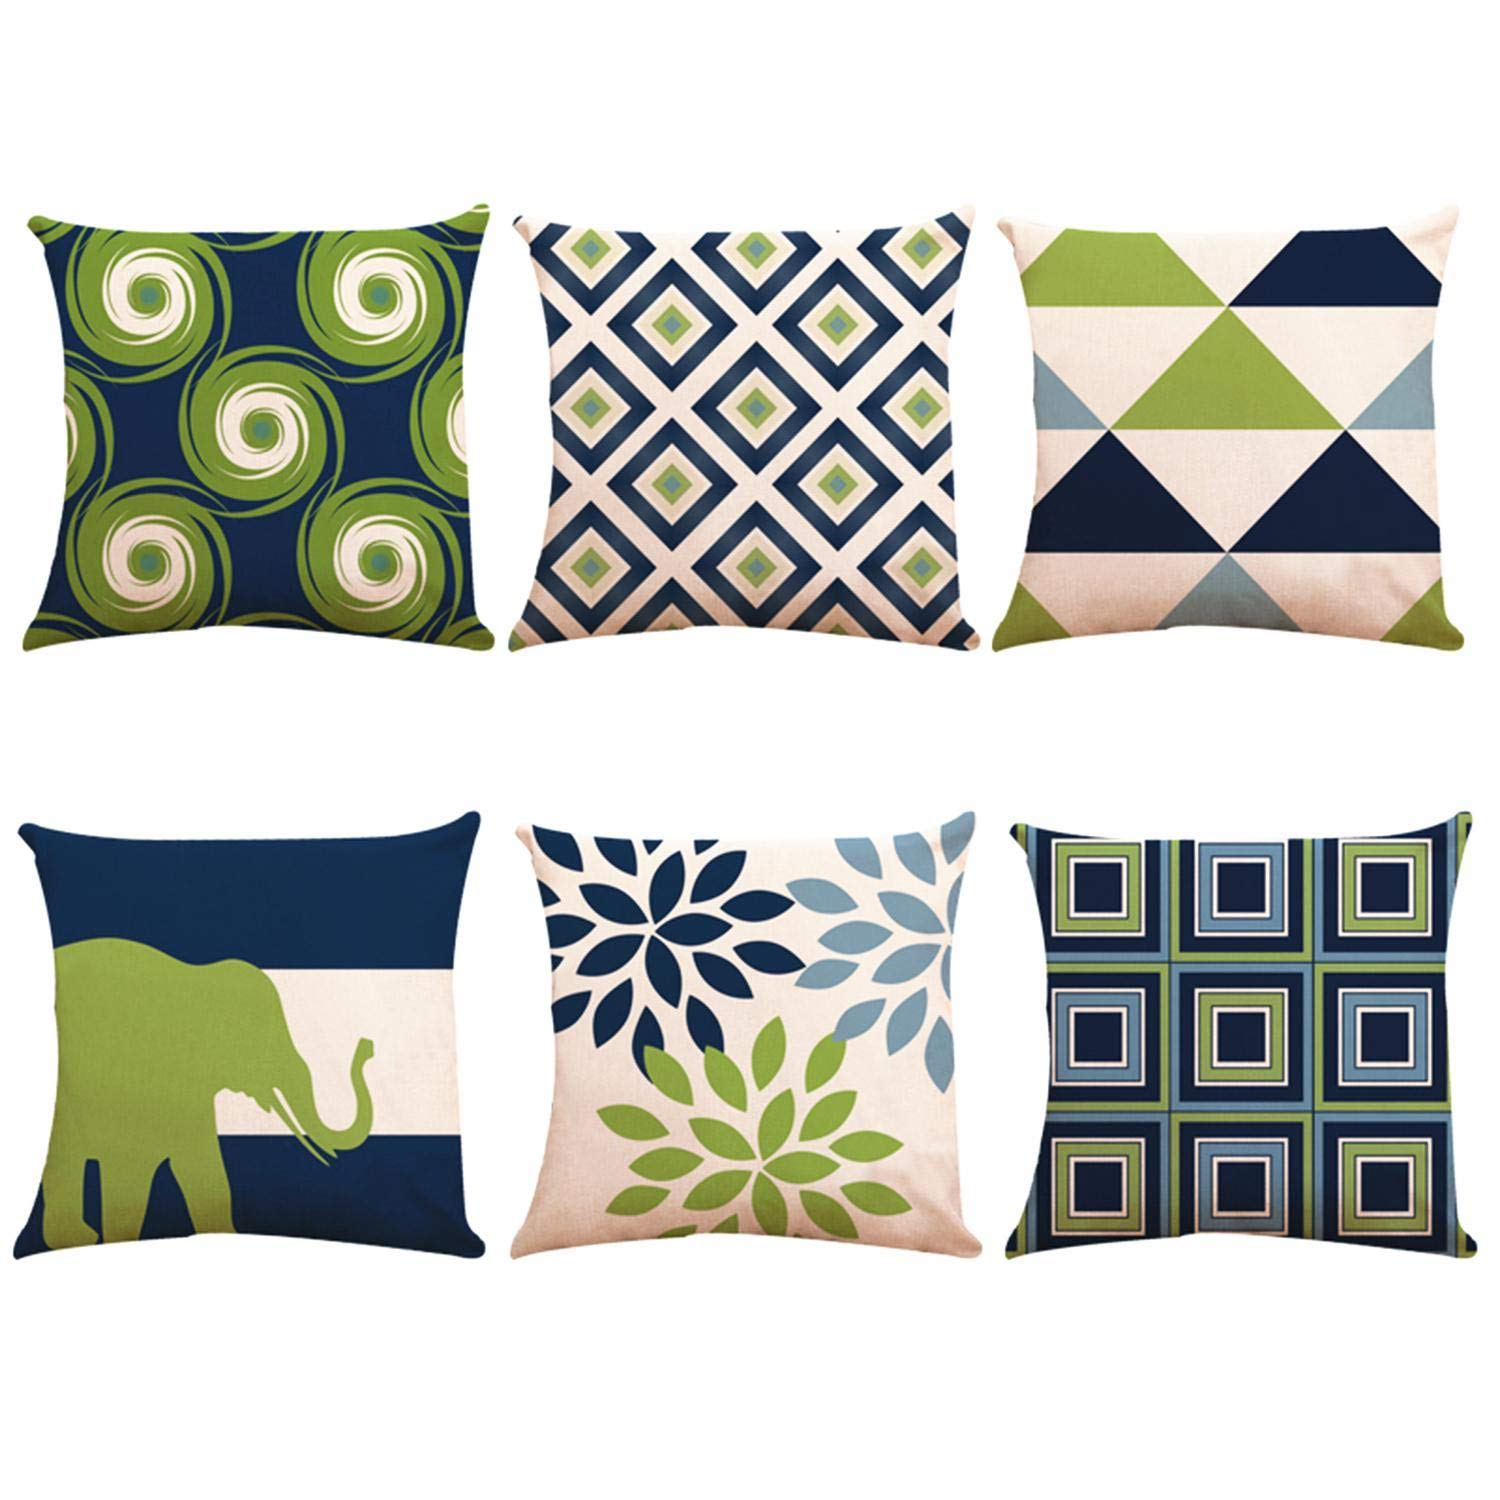 Decorative Throw Pillow Covers 18 x 18 Inch Double Side Design,ZUEXT Set of 6 Geometric Cotton Linen Indoor Outdoor Pillow Case Cushion Cover for Car Sofa Home Decor(Navy Pear Green New Living Series)